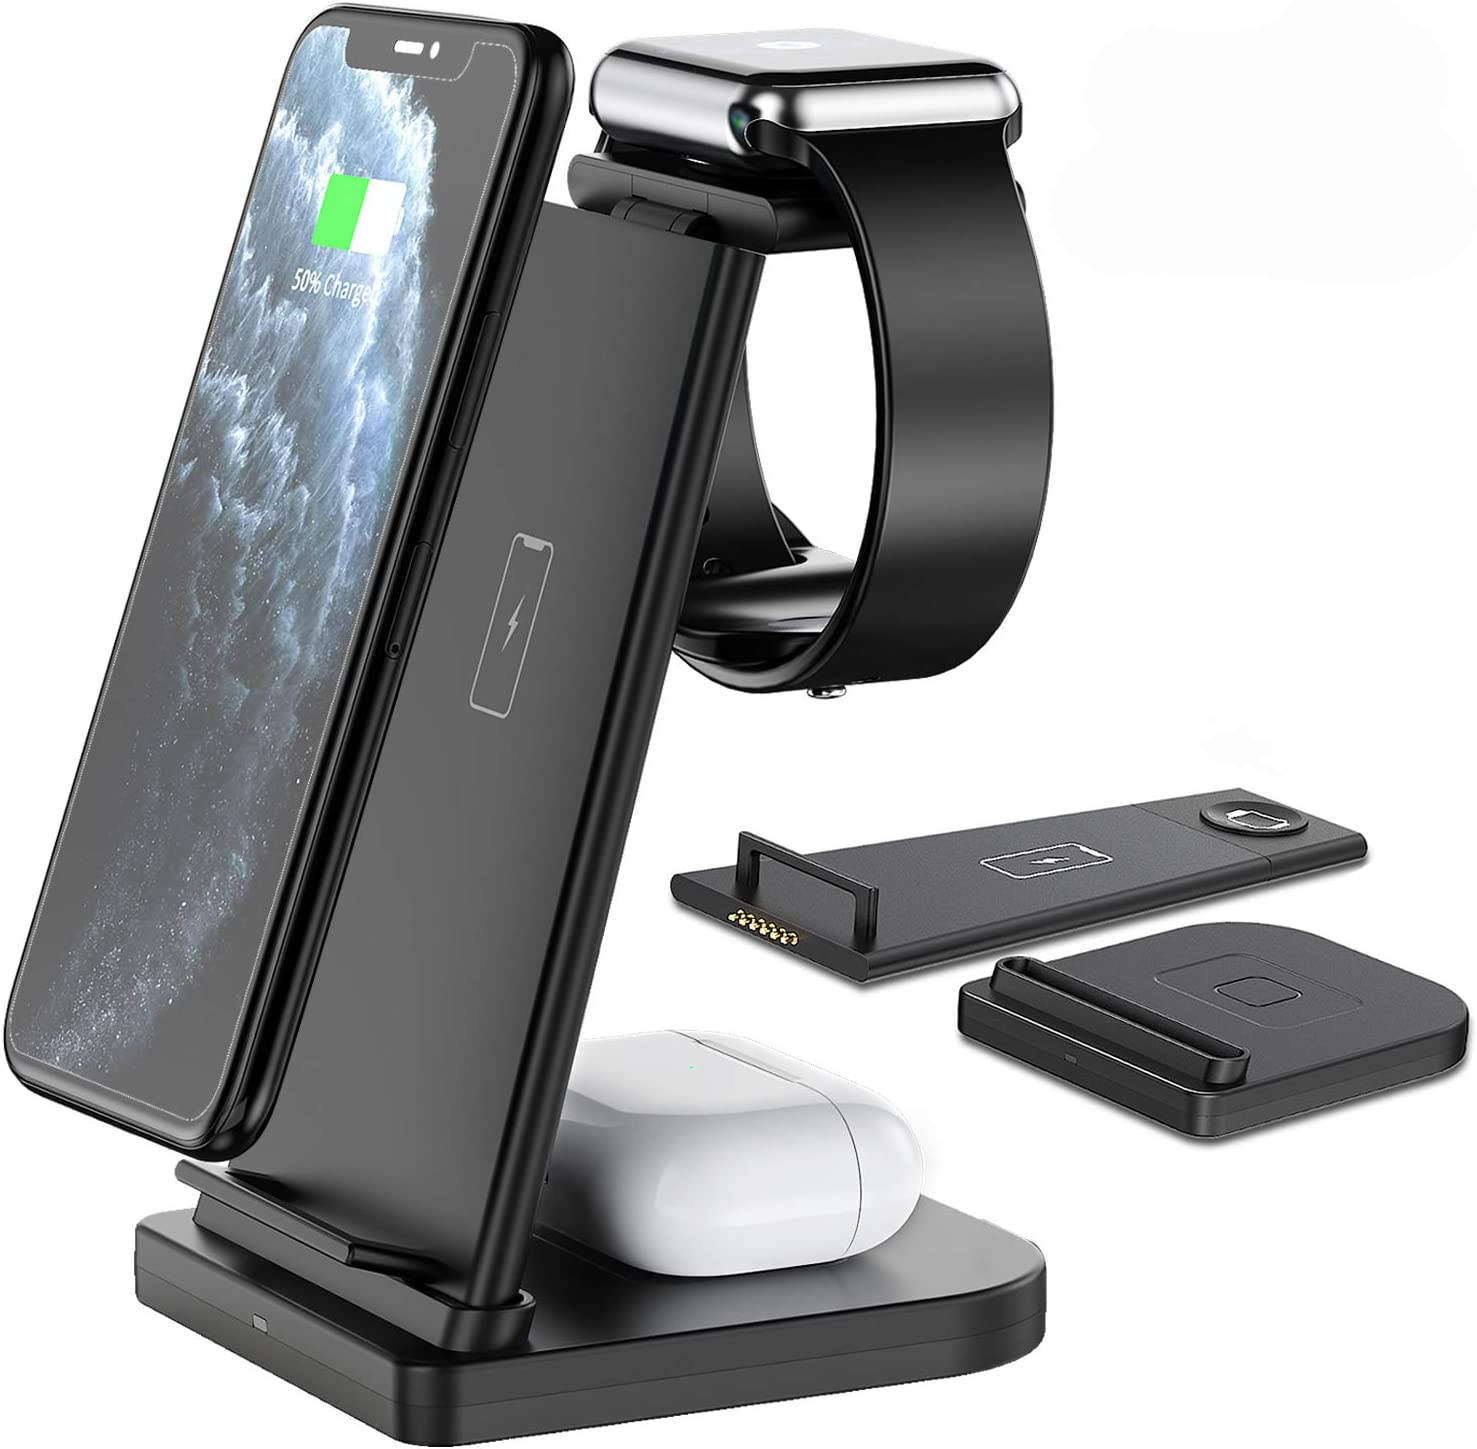 Wireless Charging Station, Hargedis 3 in 1 Fast Wireless Charger Stand, Qi-Certified Wireless Charger for iPhone 11/11 Pro Max/XR/XS Max/Xs/X/8/8P, iWatch 6/5/4/3/2, AirPods Pro/Airpods 2